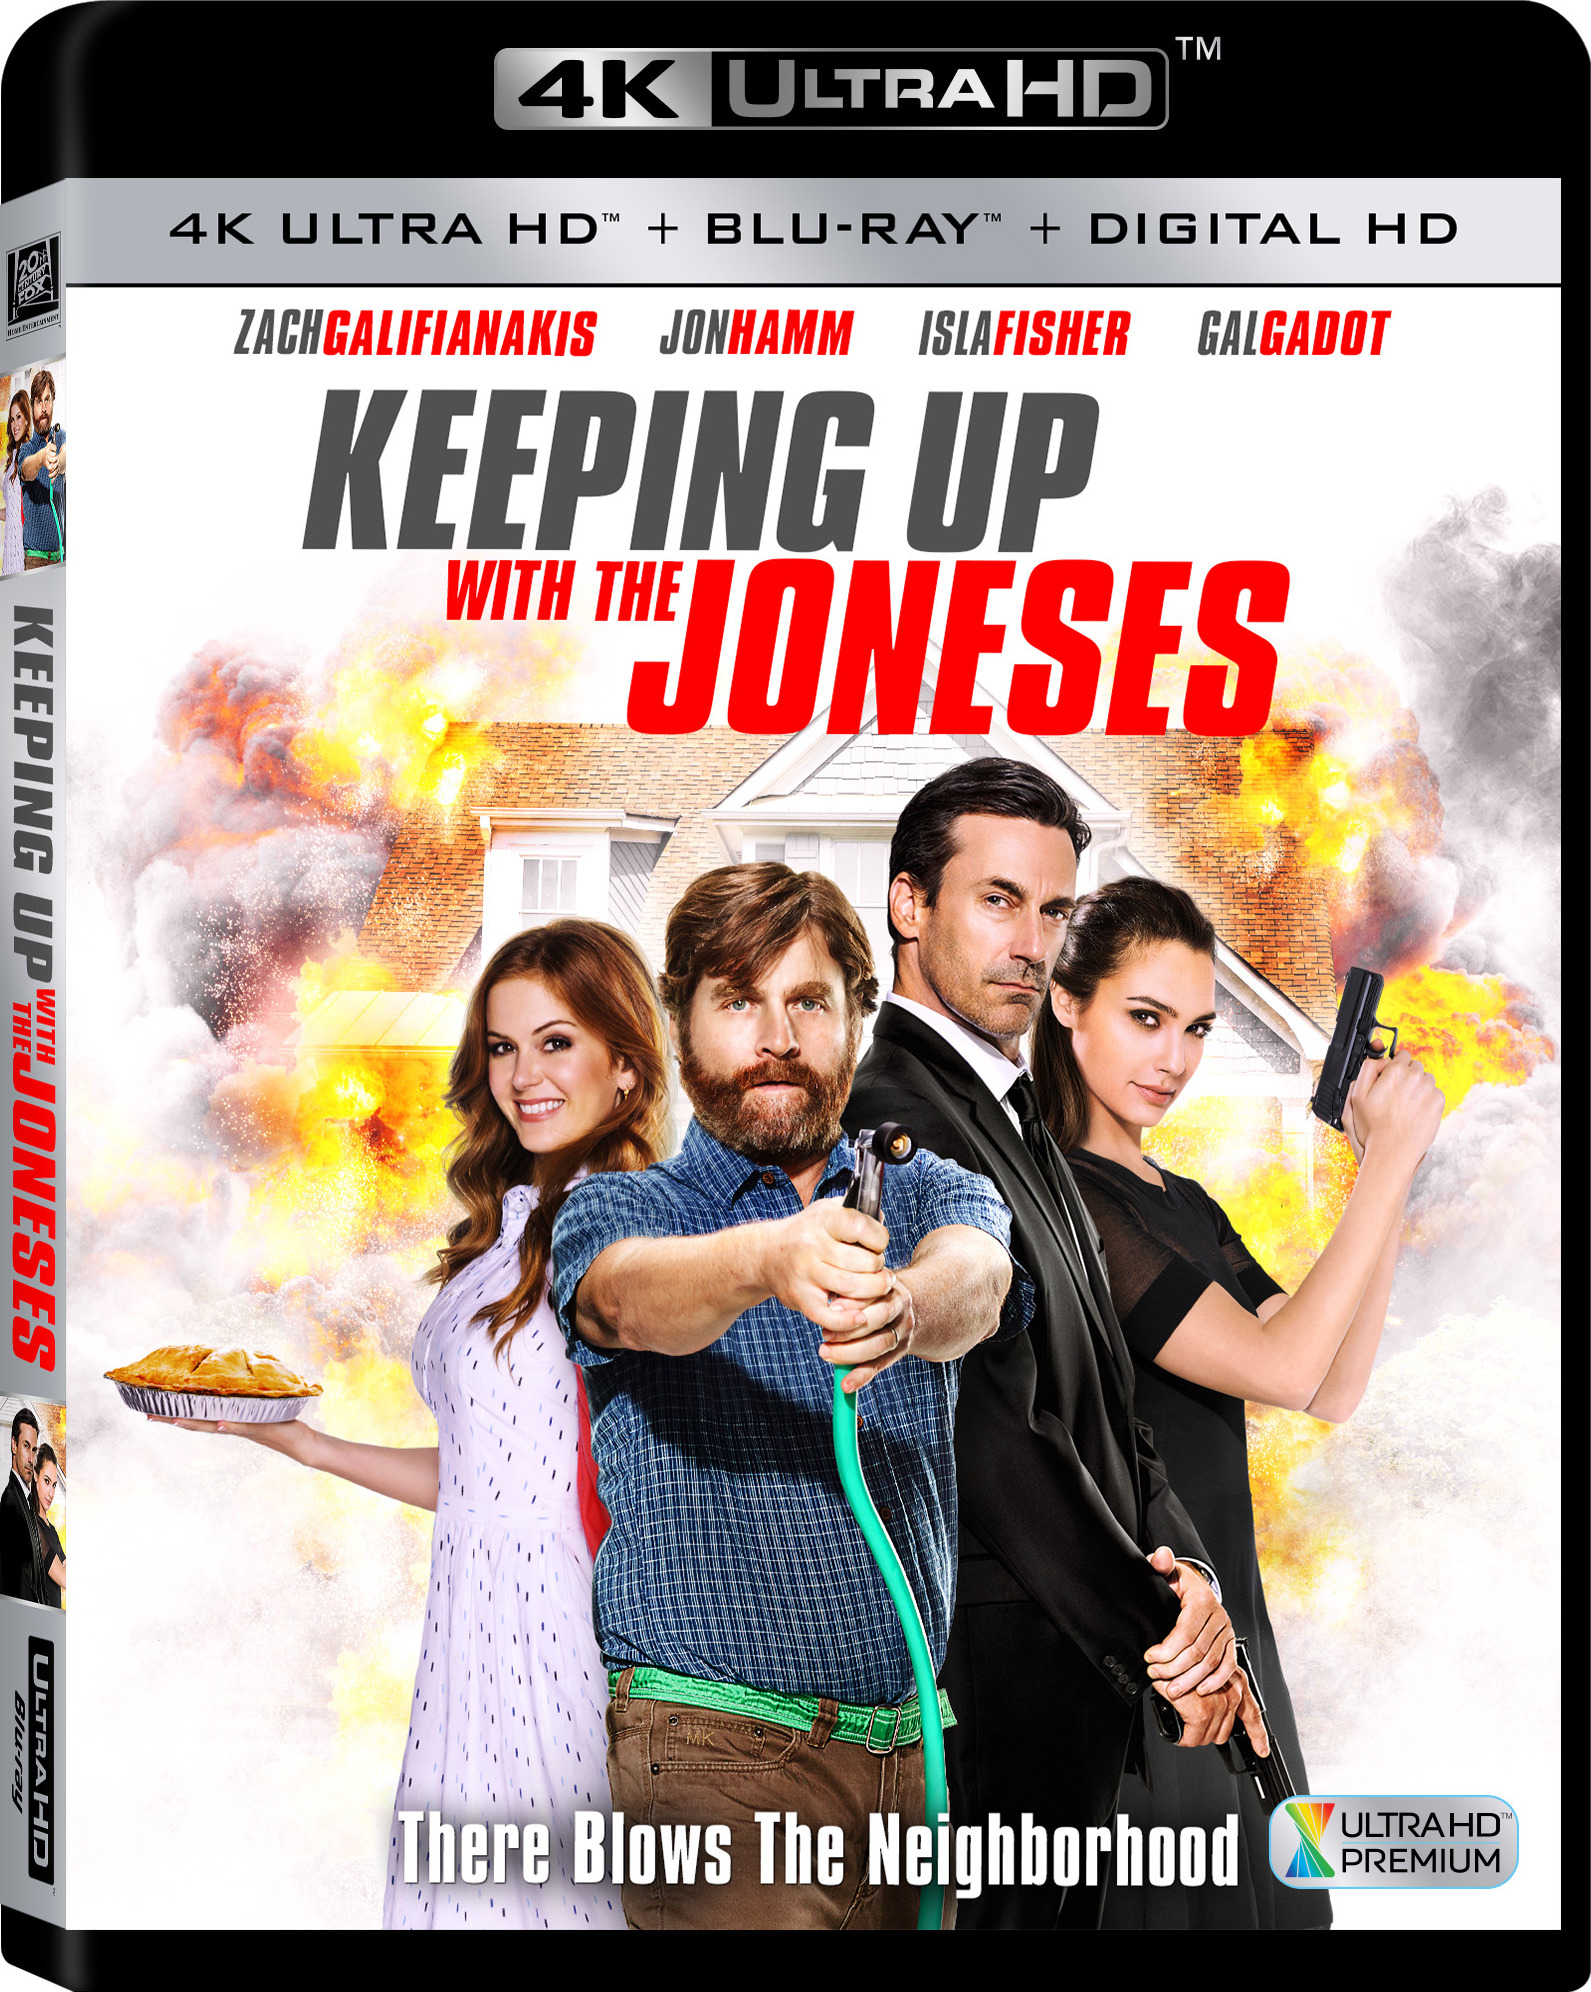 Keeping Up with the Joneses 4K (2016) Ultra HD Blu-ray